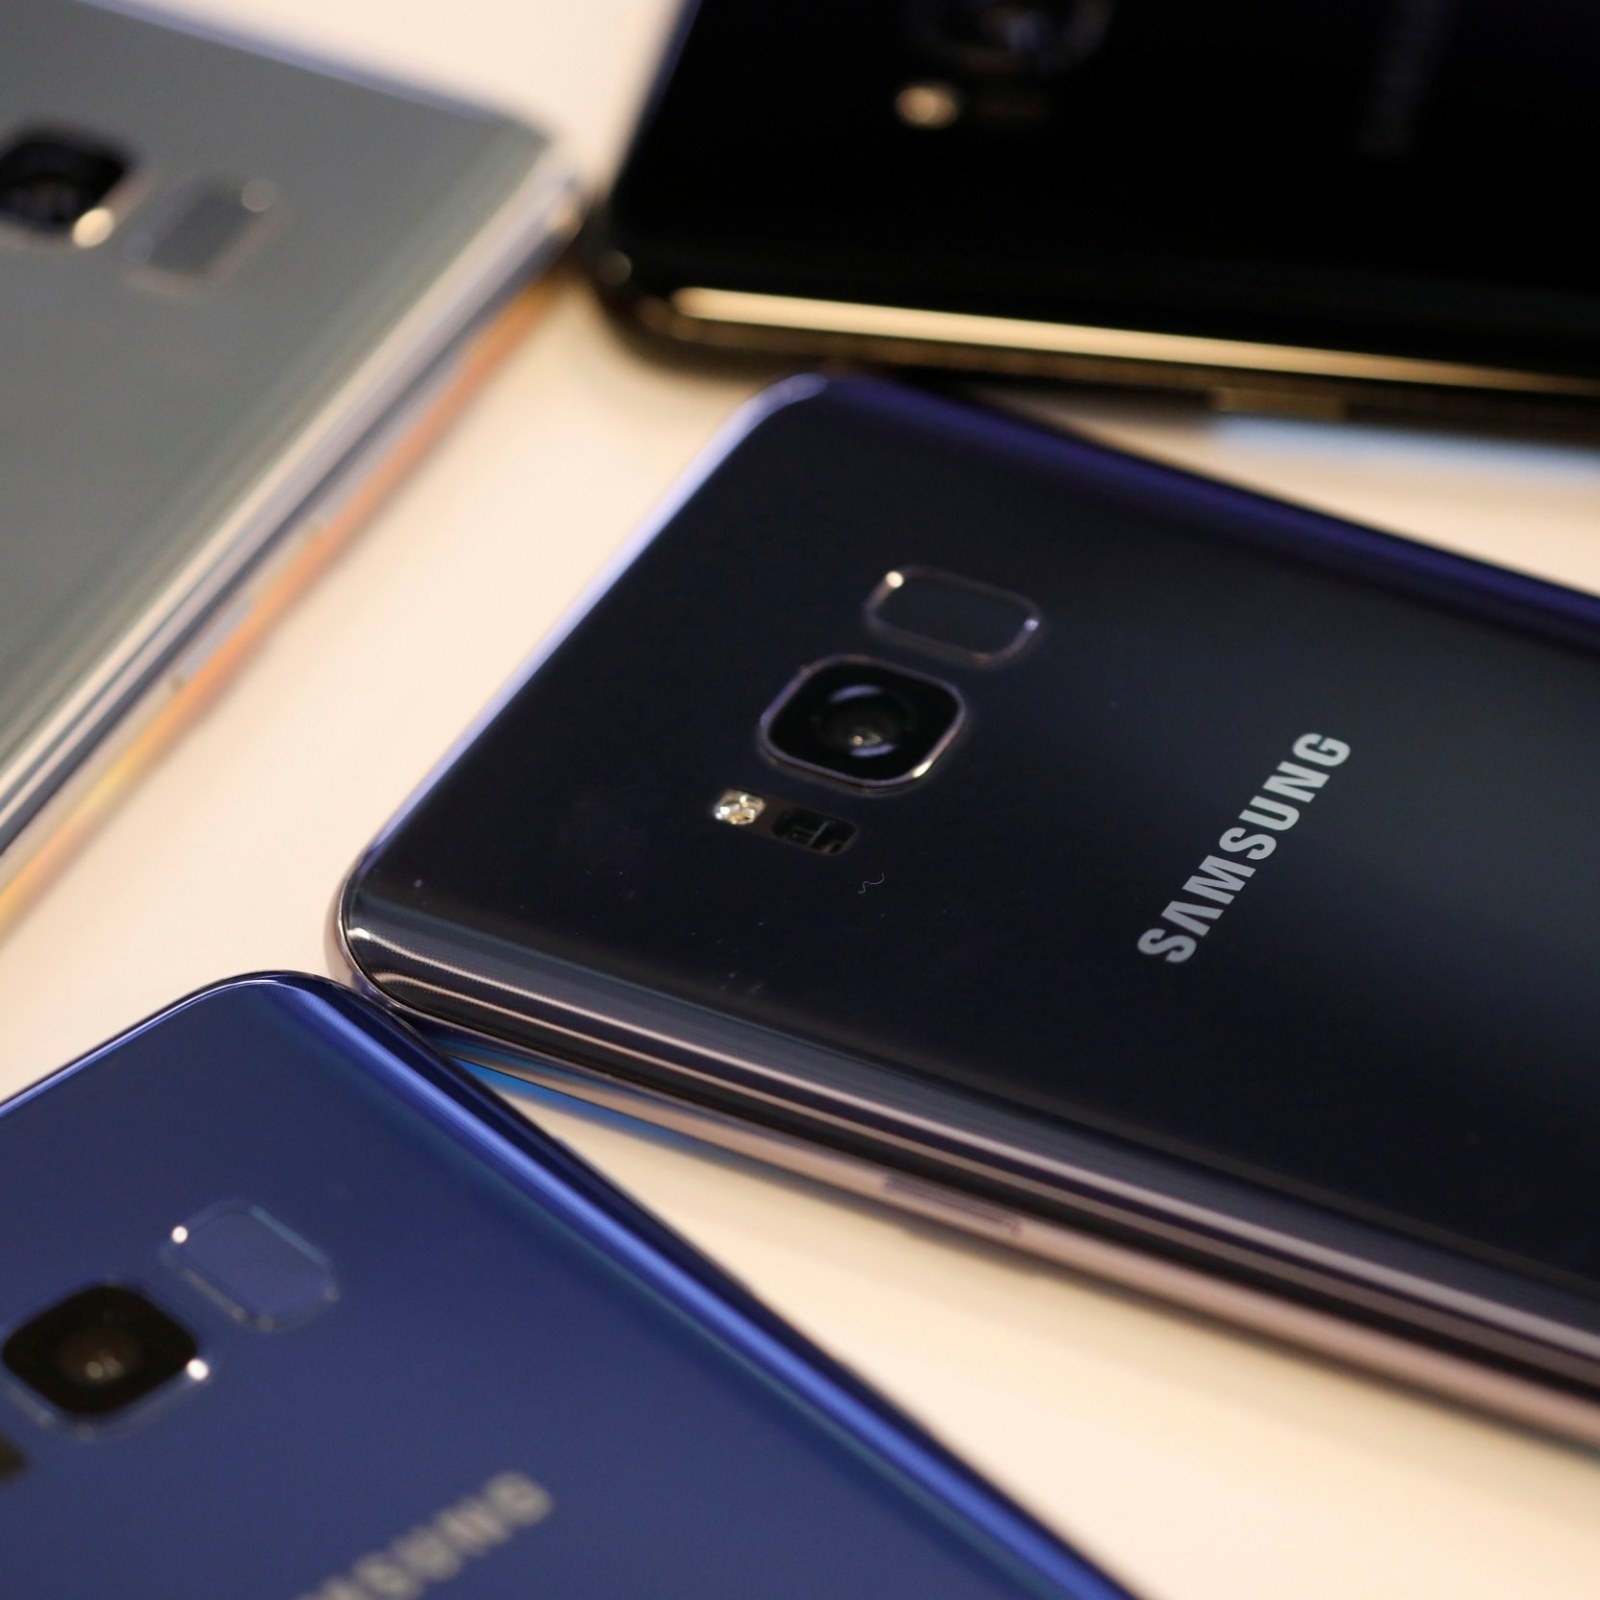 Samsung Phone 'Bursts into Flames' While Woman Driving, Destroying Car